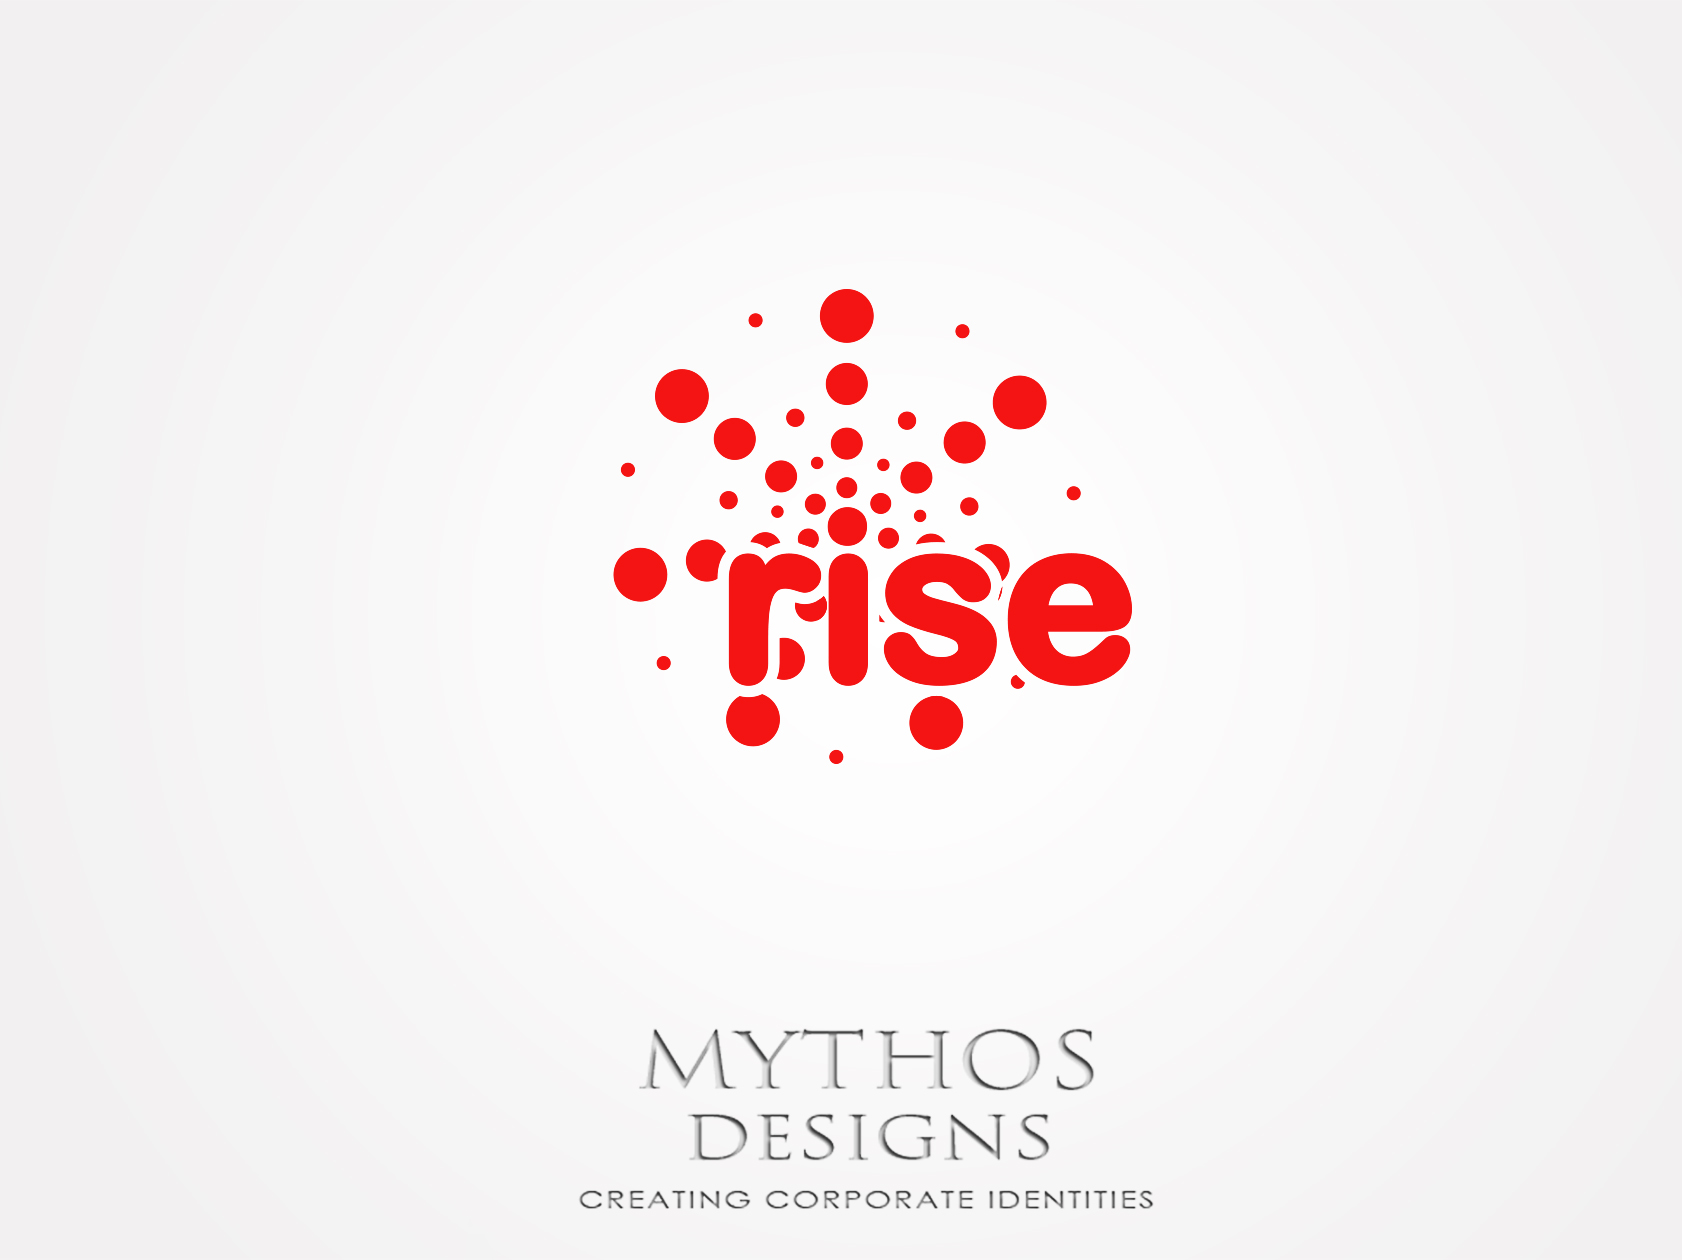 Logo Design by Mythos Designs - Entry No. 154 in the Logo Design Contest Imaginative Logo Design for Rise Tutoring Service.